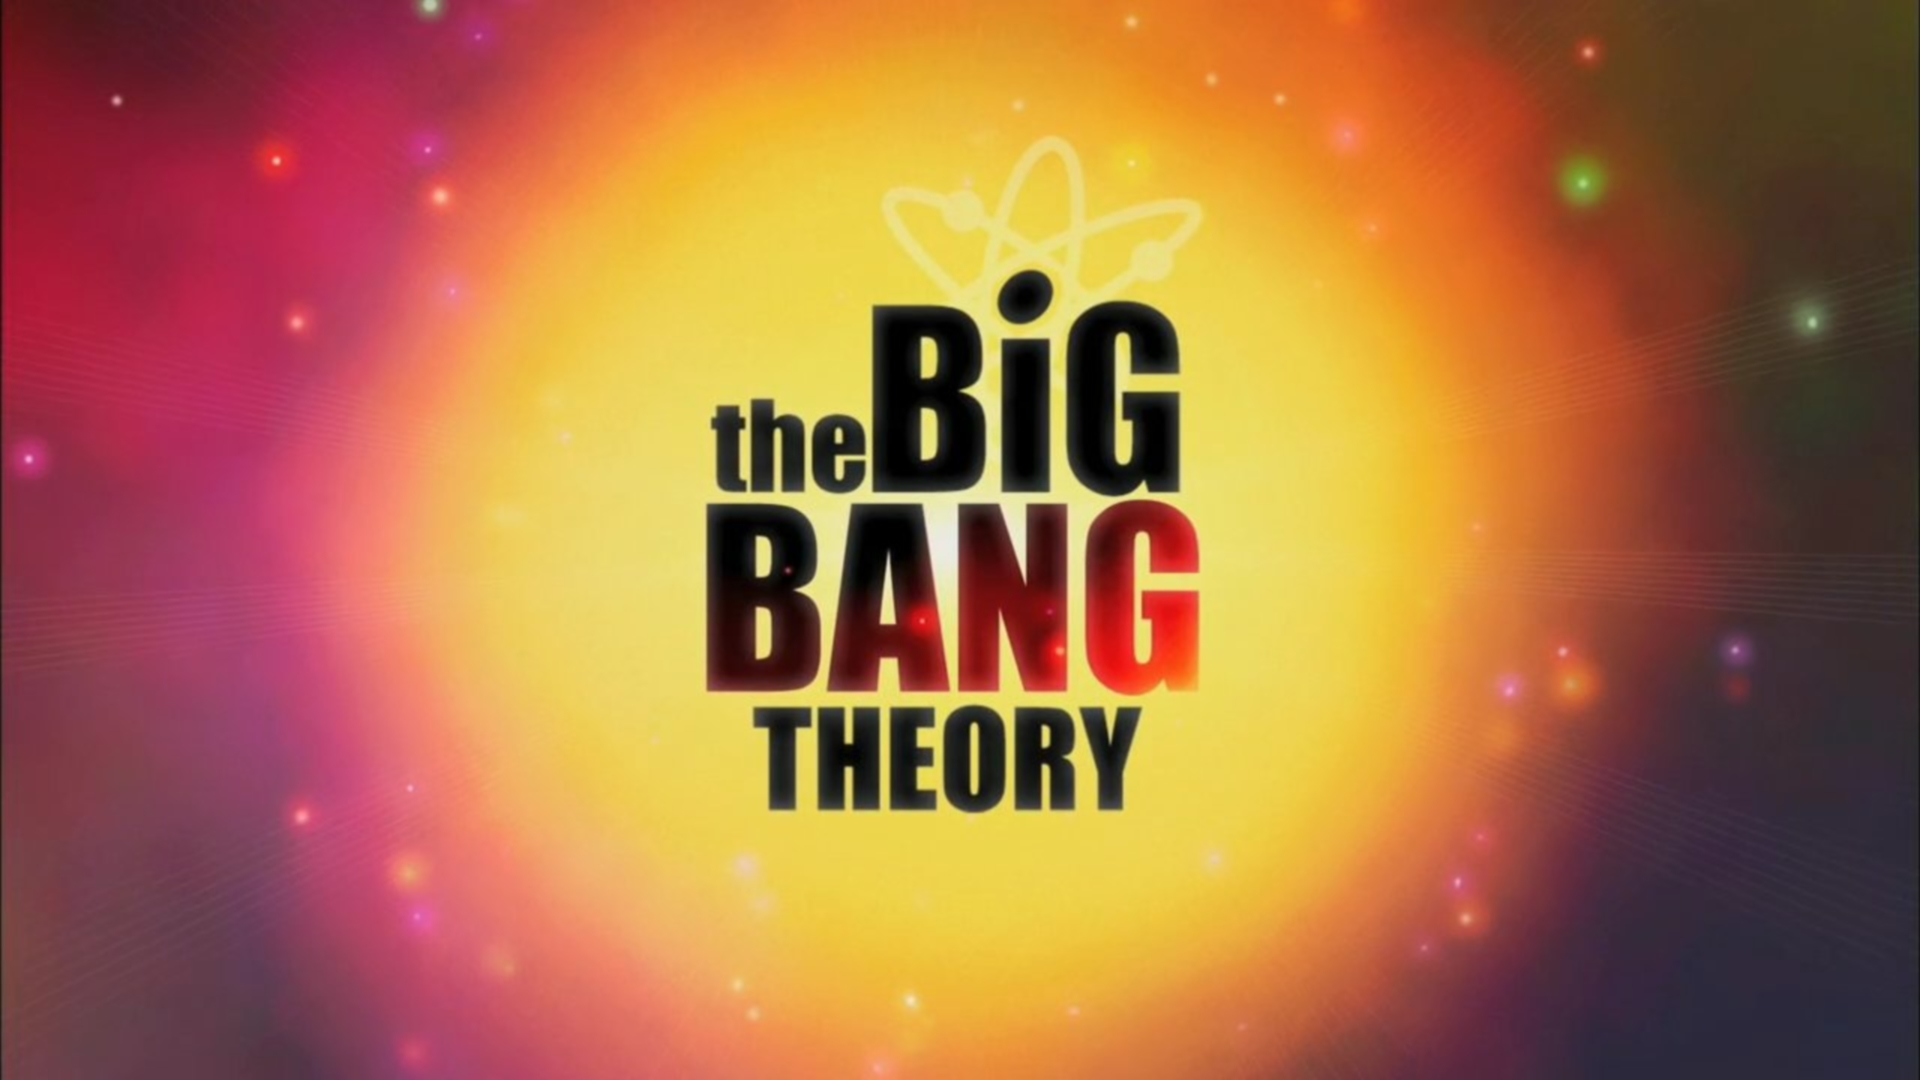 bigbang theory Define big bang theory: a theory in astronomy: the universe originated billions of years ago in an explosion from a single point of nearly infinite.